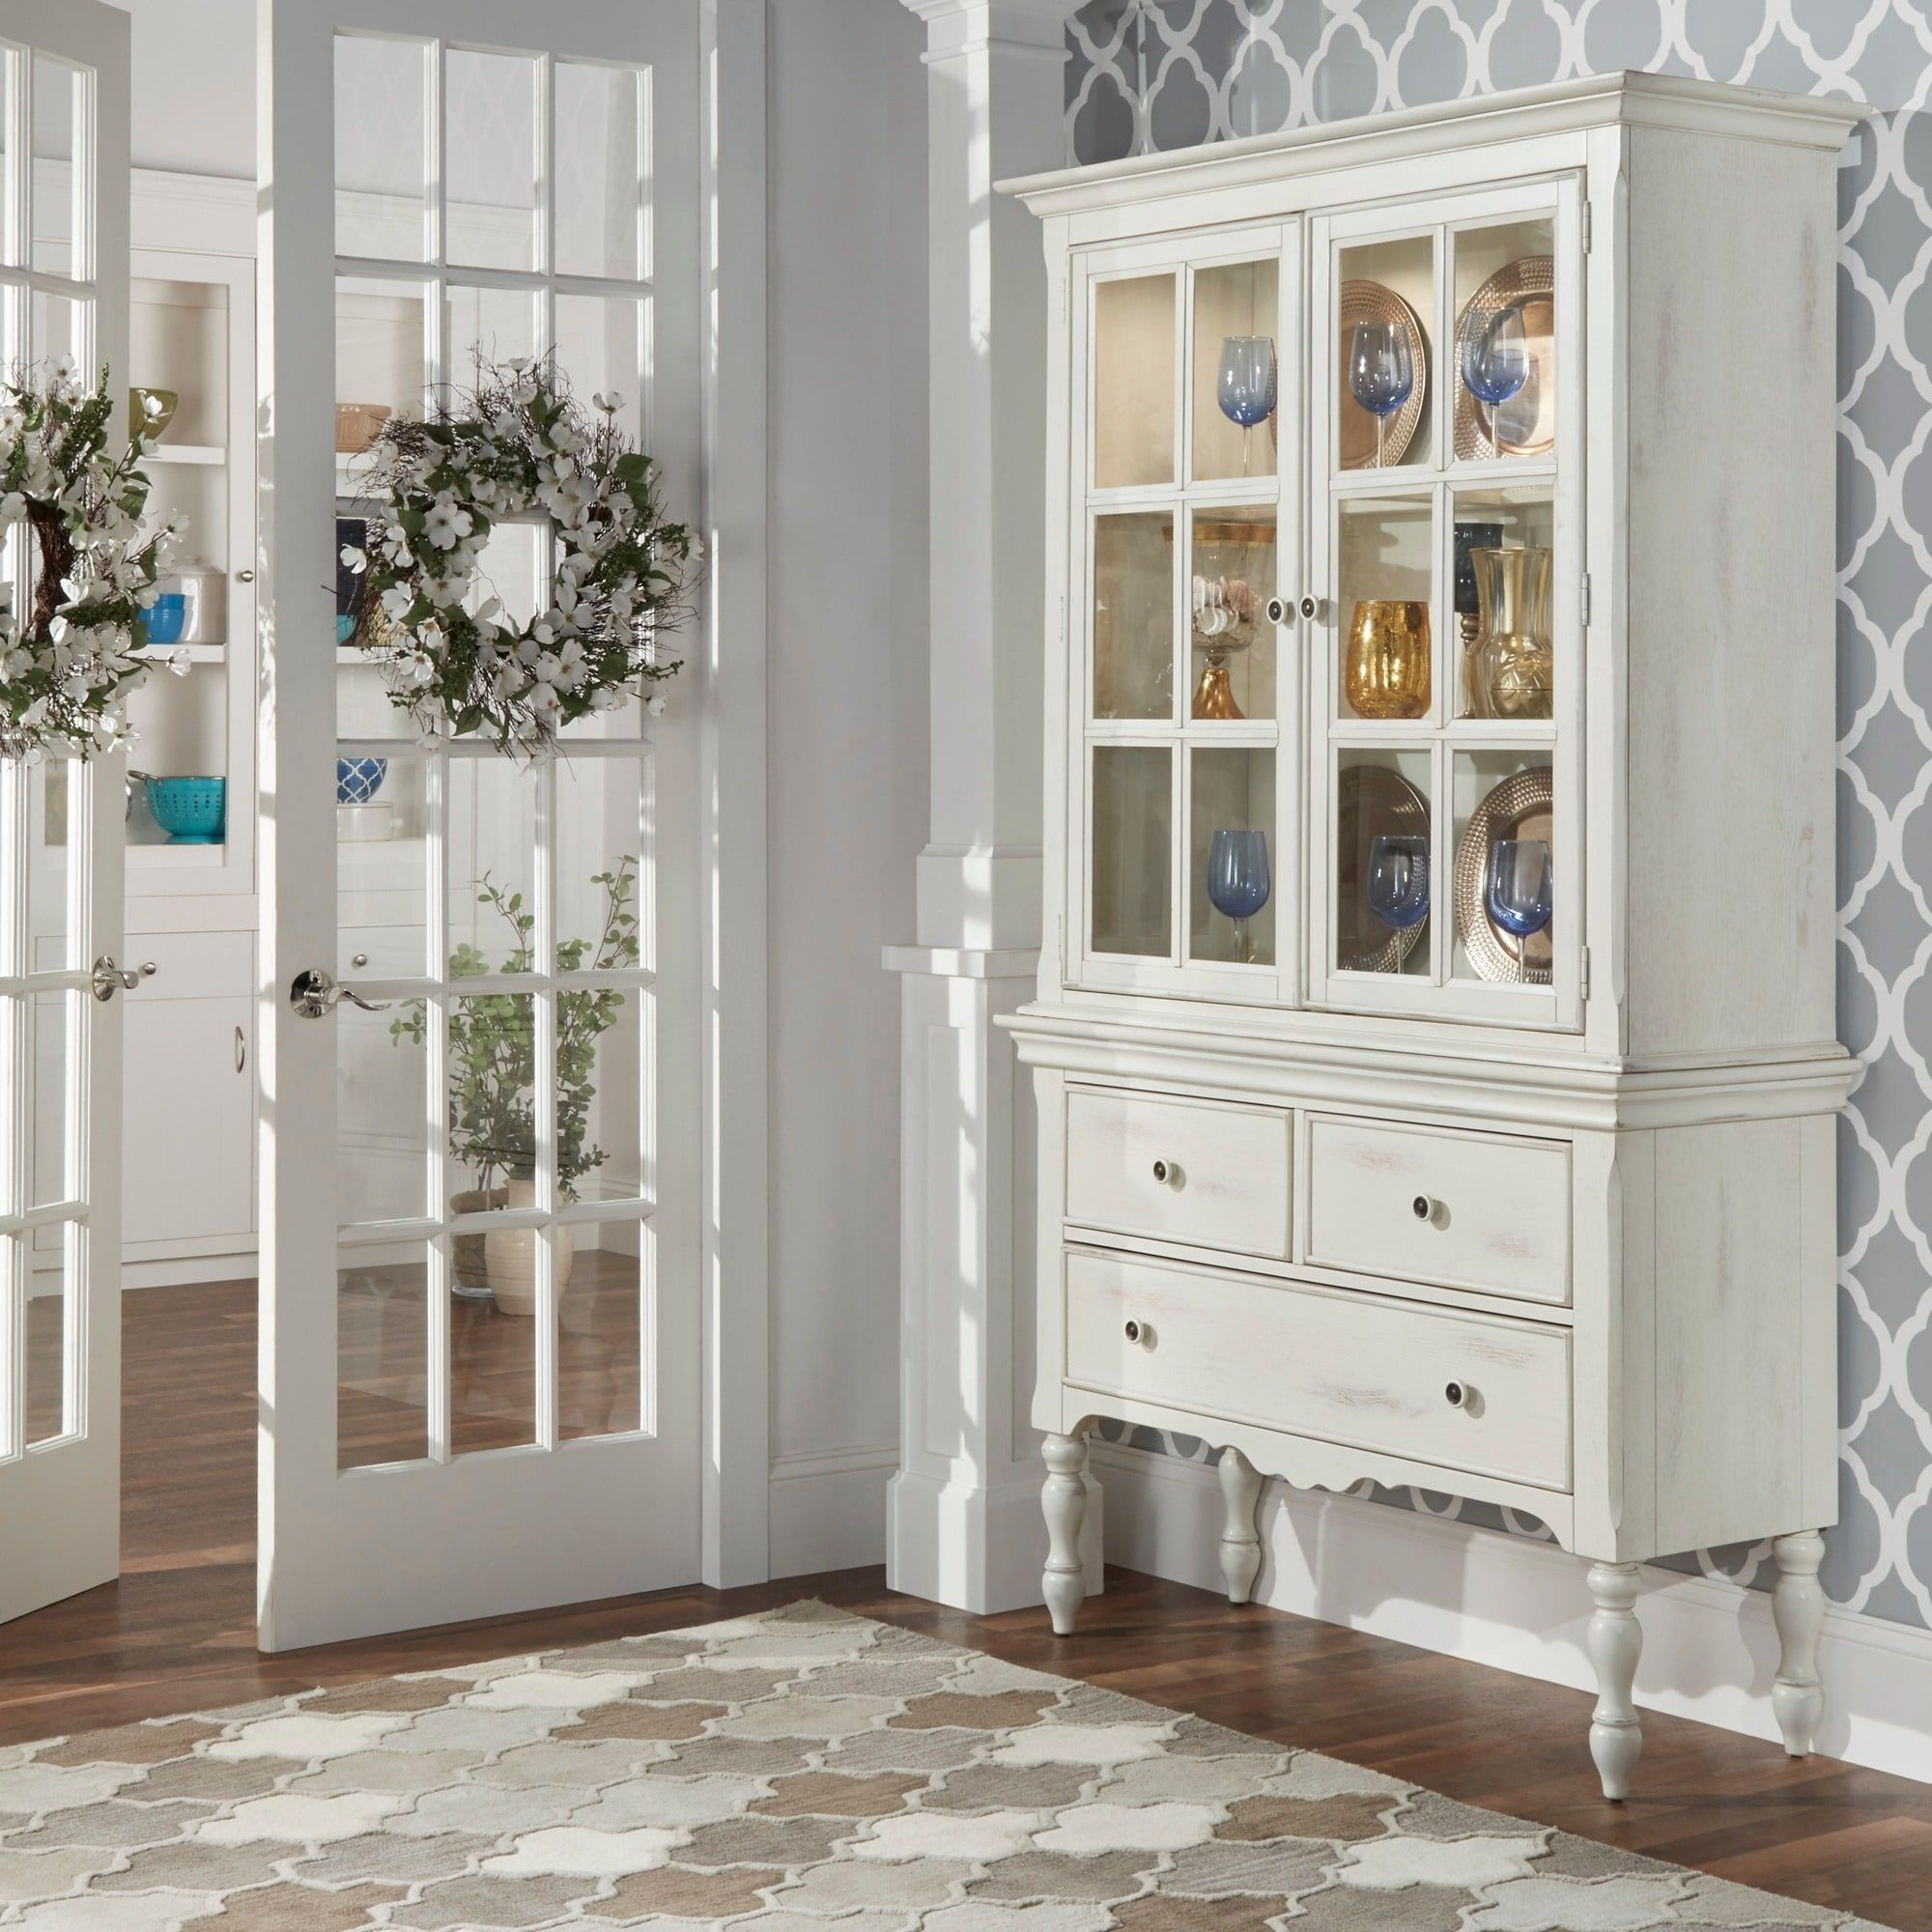 McKay Country Antique White Display Buffet Storage China Cabinet by iNSPIRE  Q Classic (China Cabinet), Ivory Cream